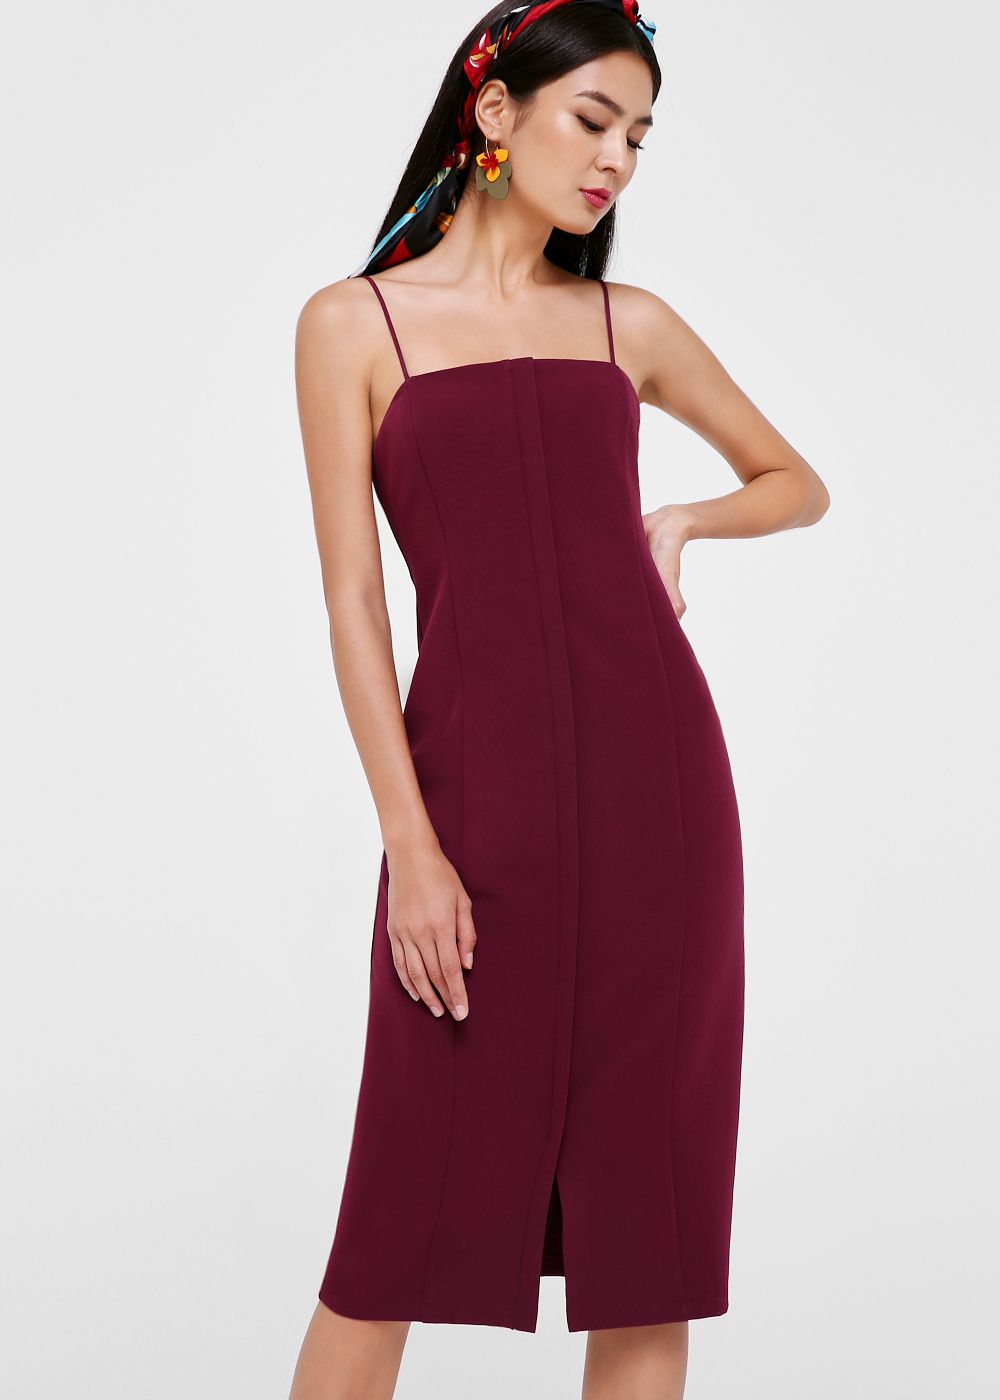 Raelynn Bodycon Midi Dress